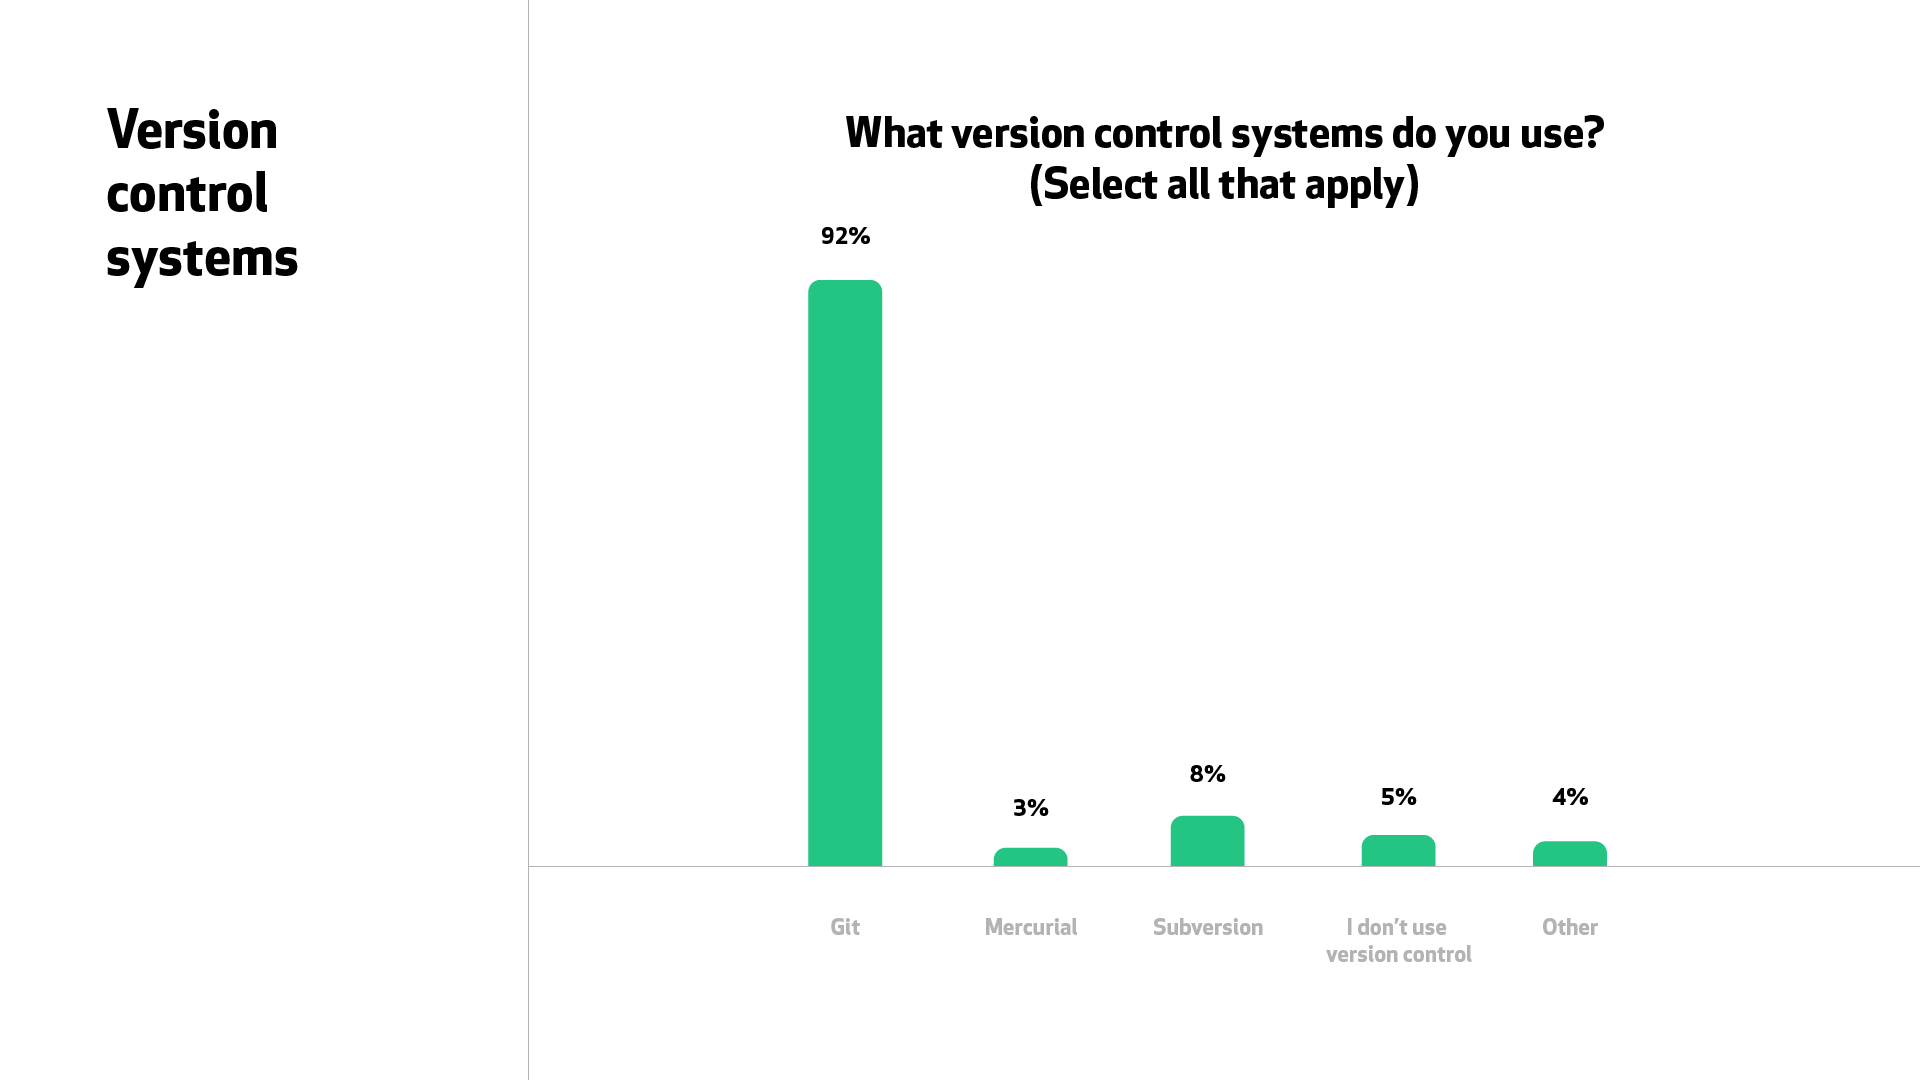 """A graph for """"What version control systems do you use?"""" 92% of respondents said Git, compared to the next largest, 8% for Subversion."""